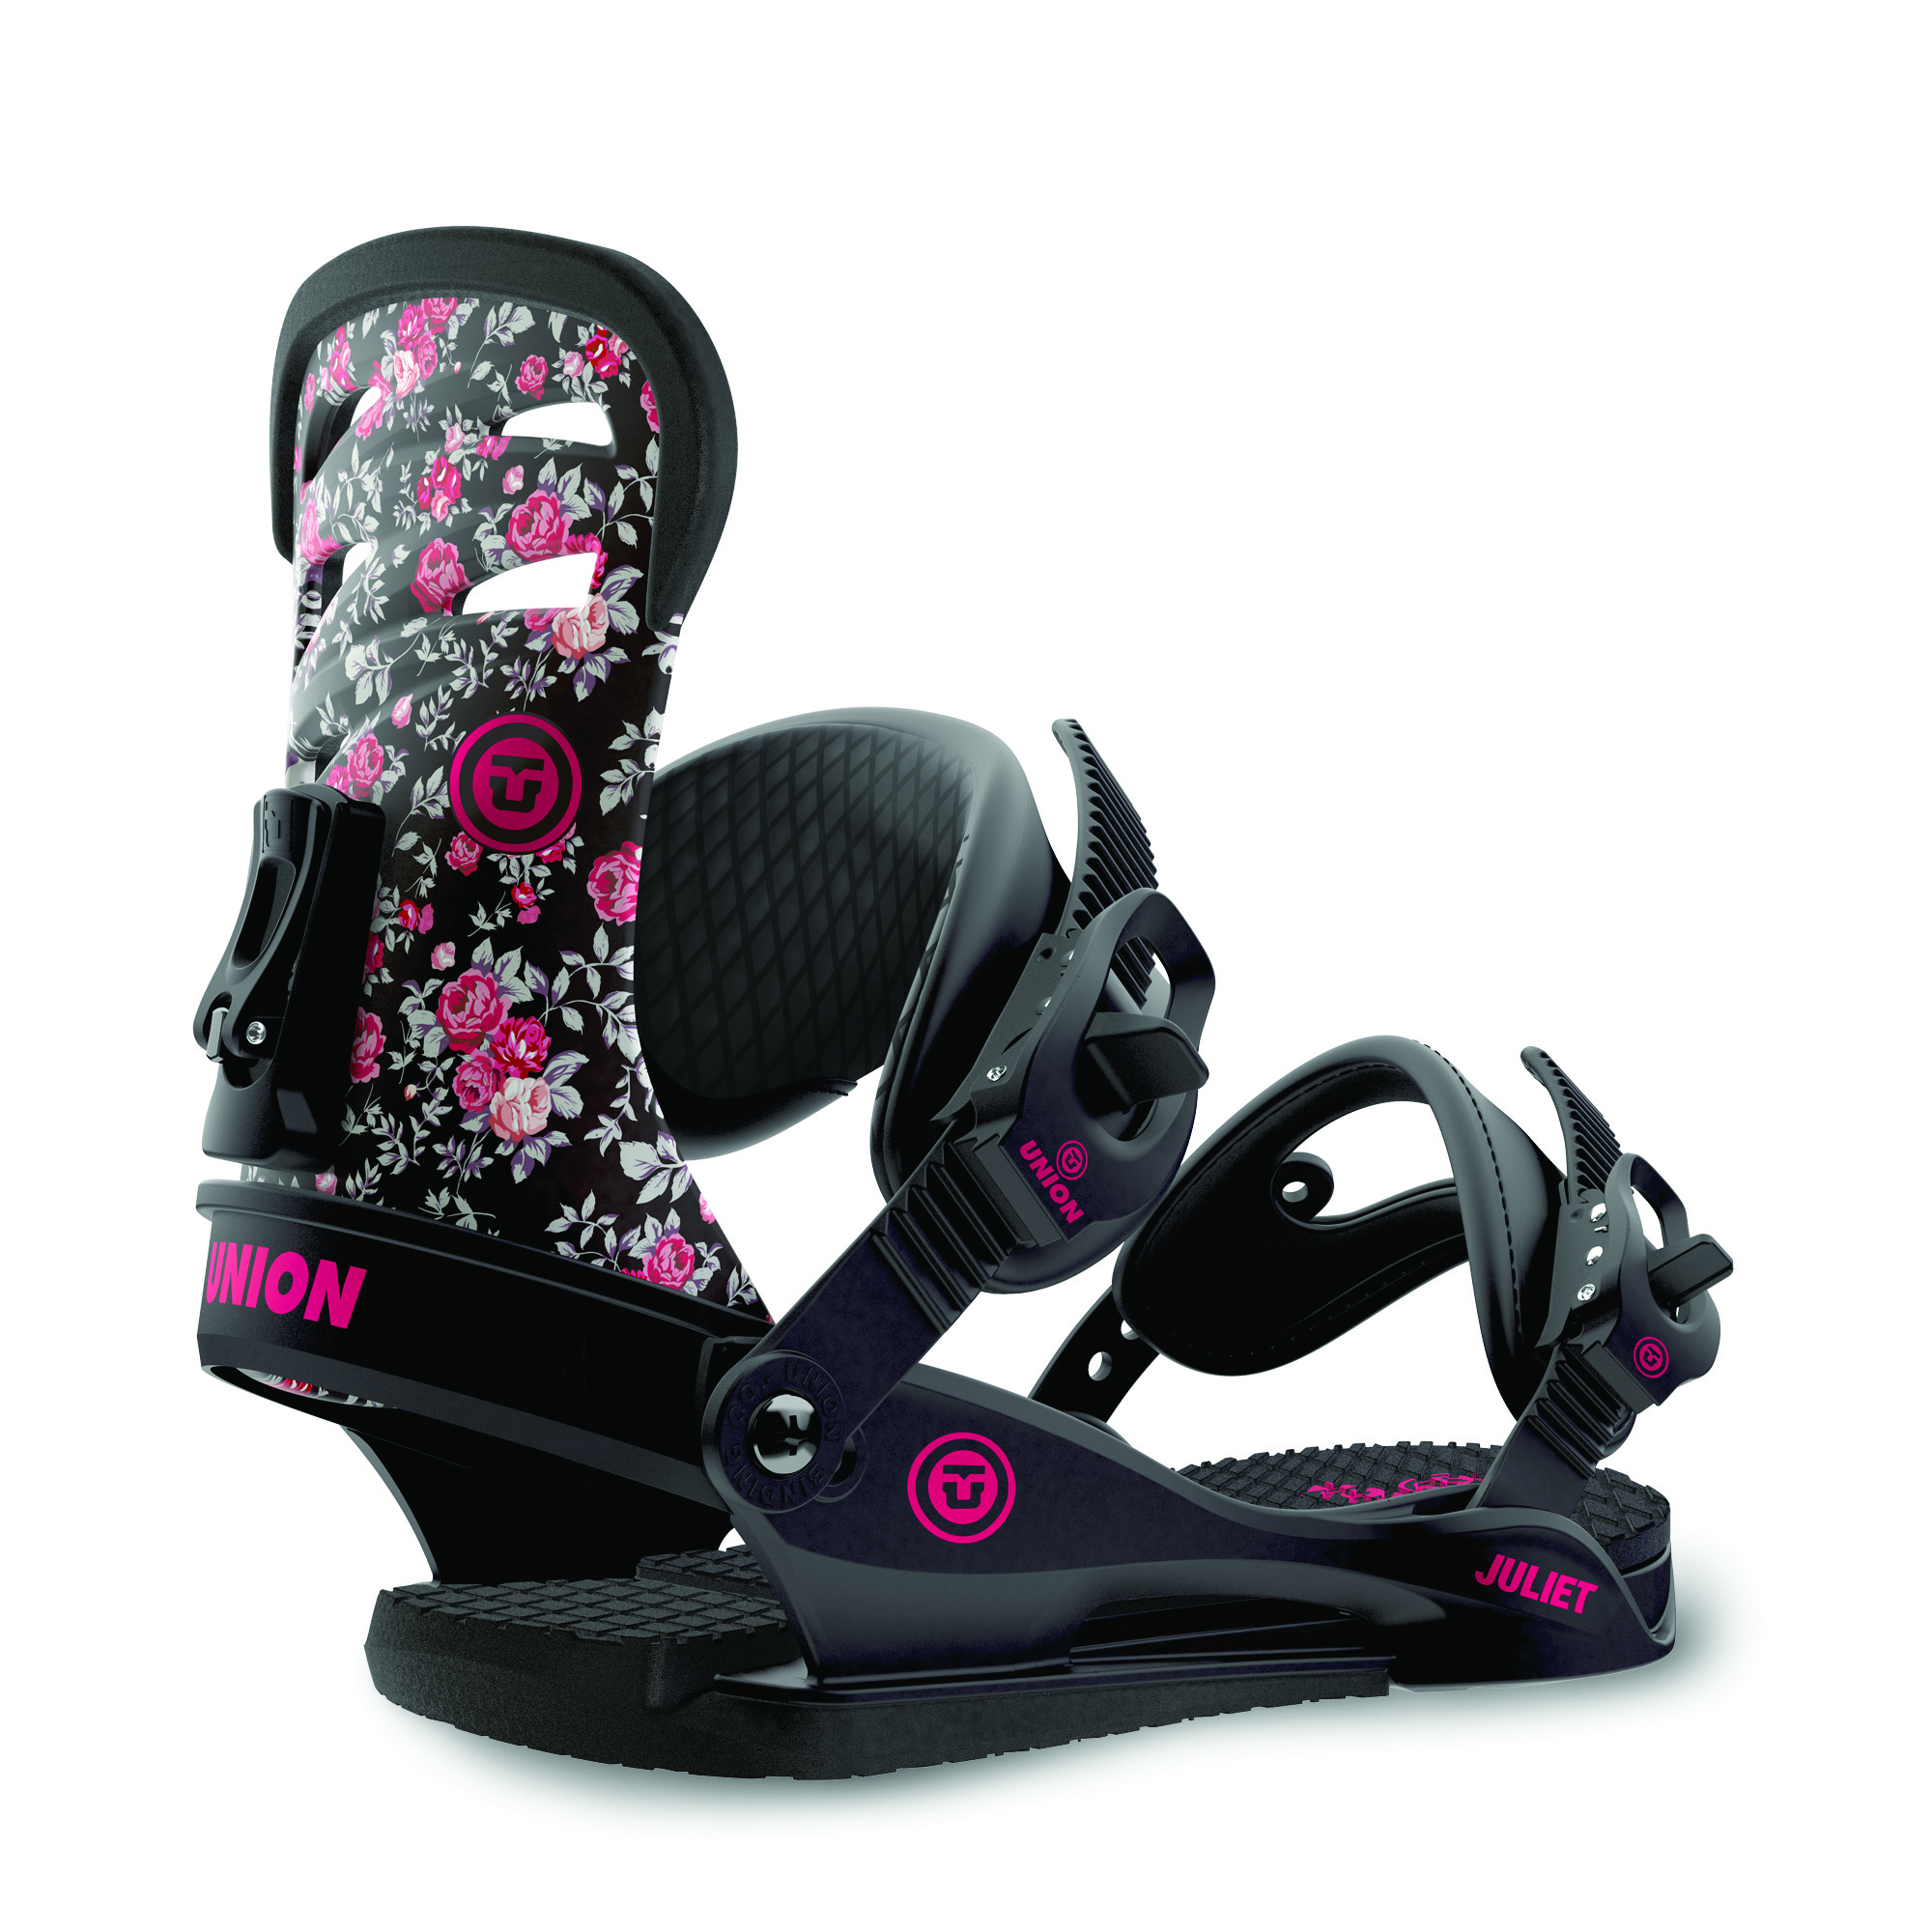 Union Juliet Snowboard Binding – Black